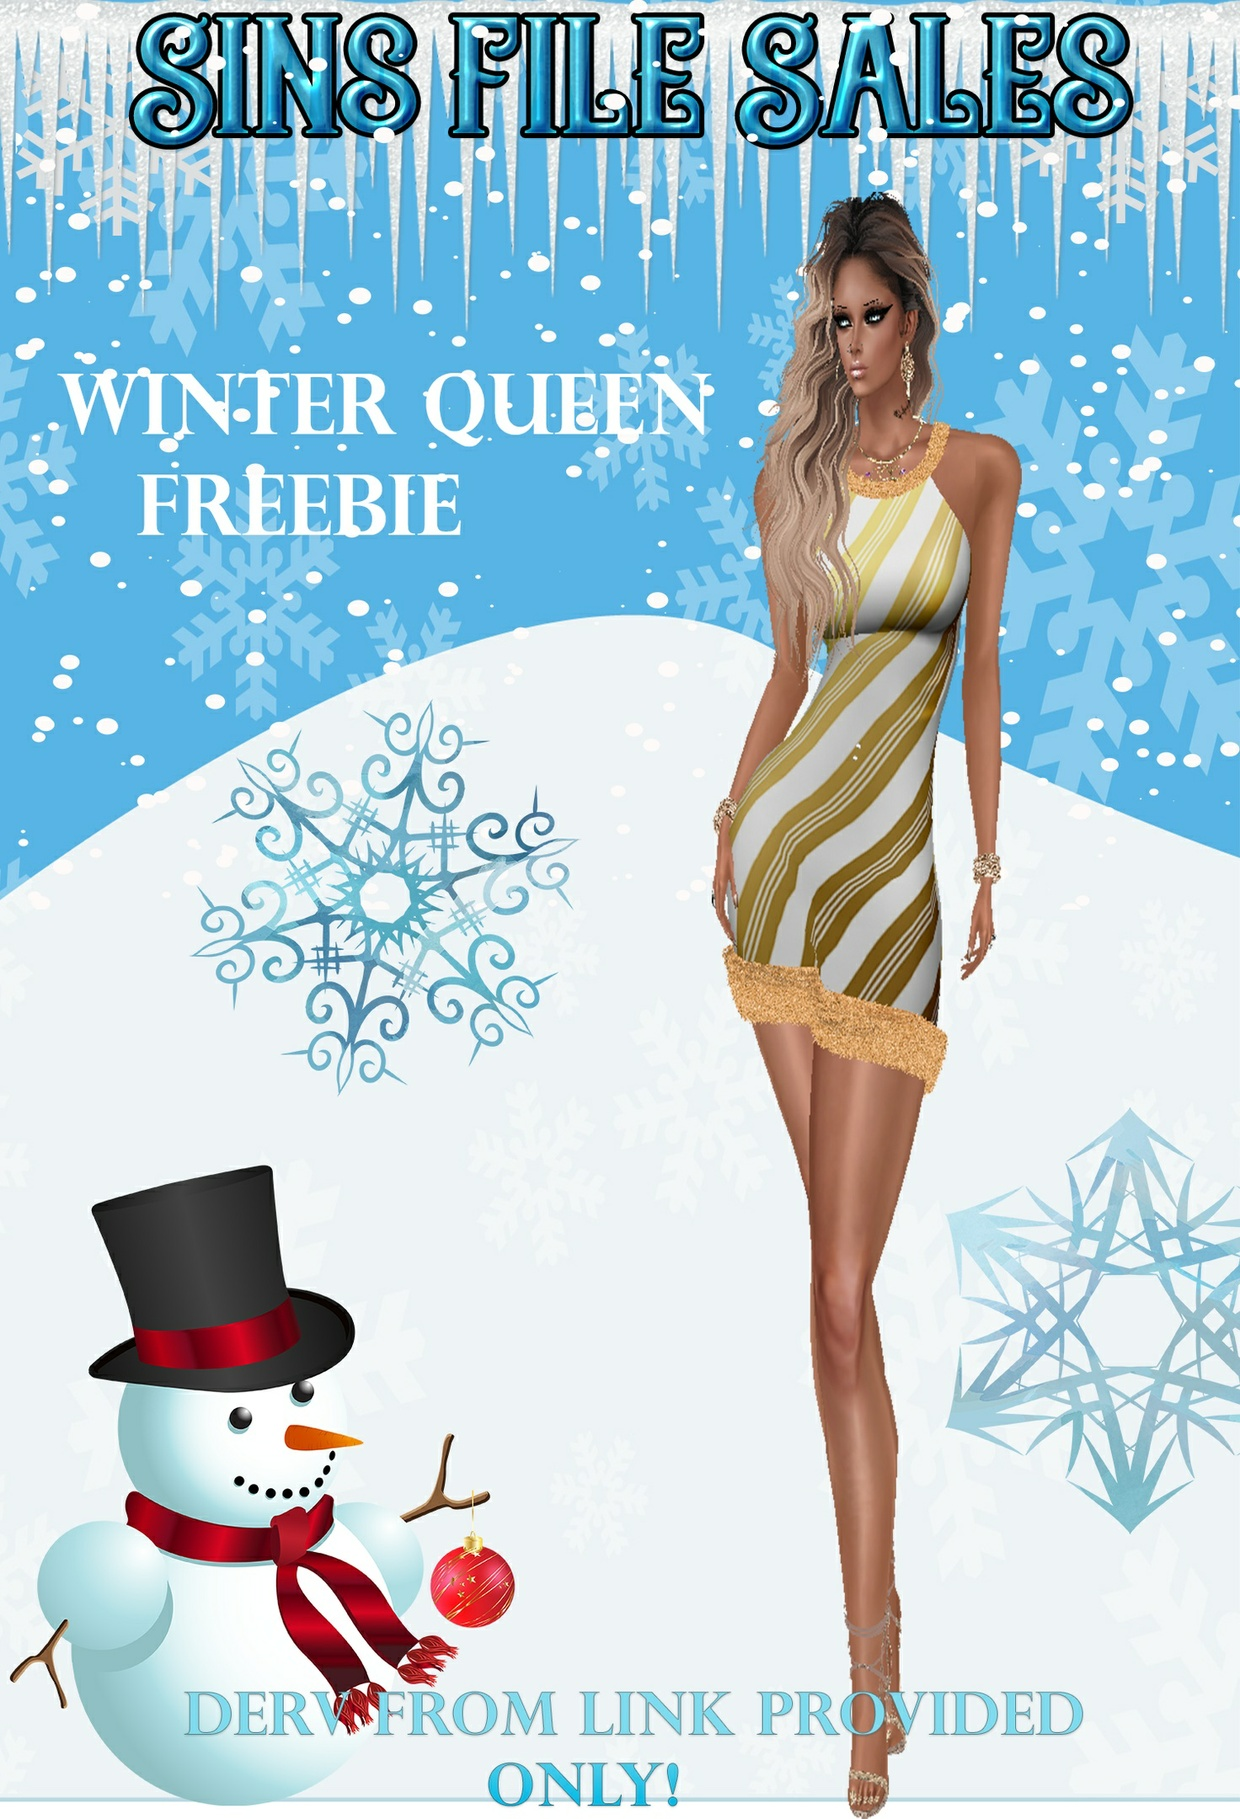 Winter Queen Freebie